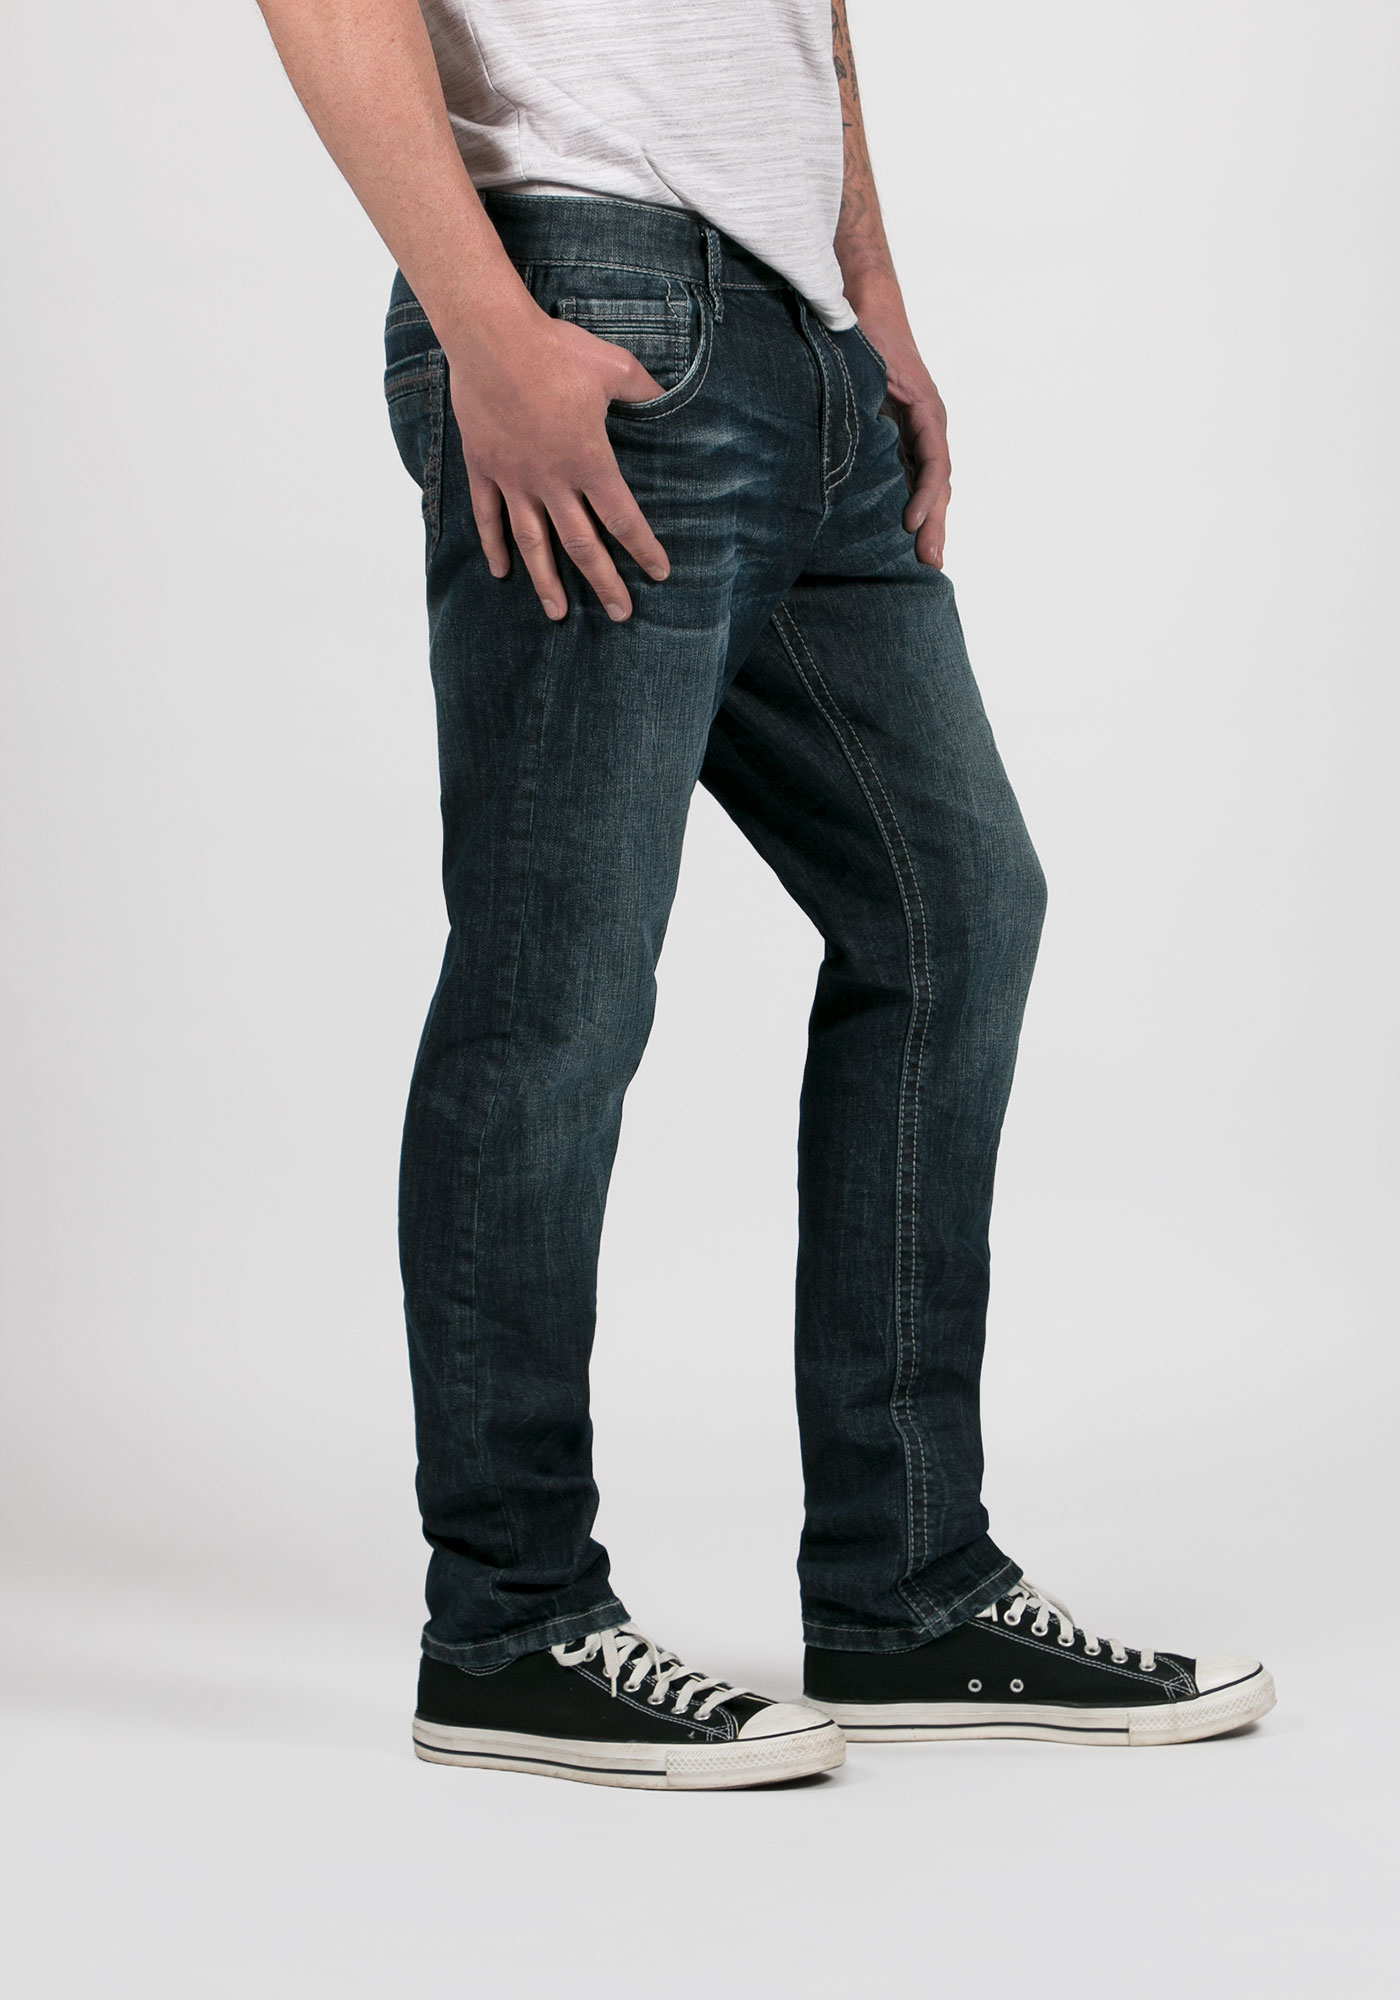 men 39 s tapered fit jeans. Black Bedroom Furniture Sets. Home Design Ideas